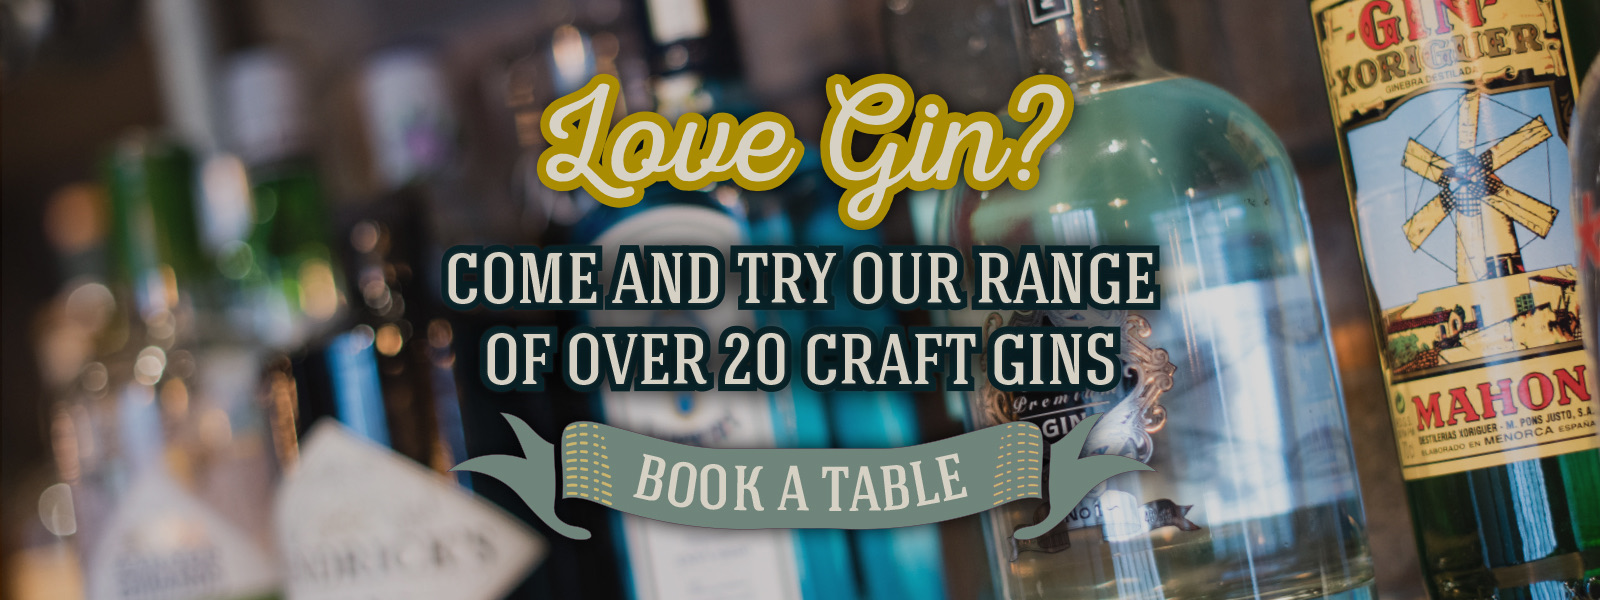 Love Gin? come and try out our range of over 20 craft gins!